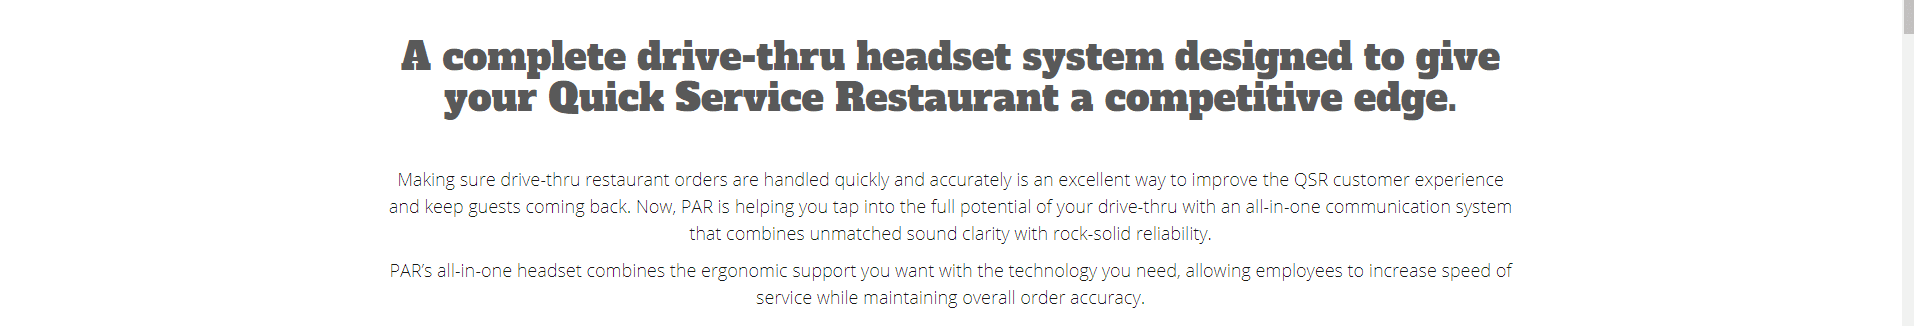 Restaurant Drive-Thru Headsets